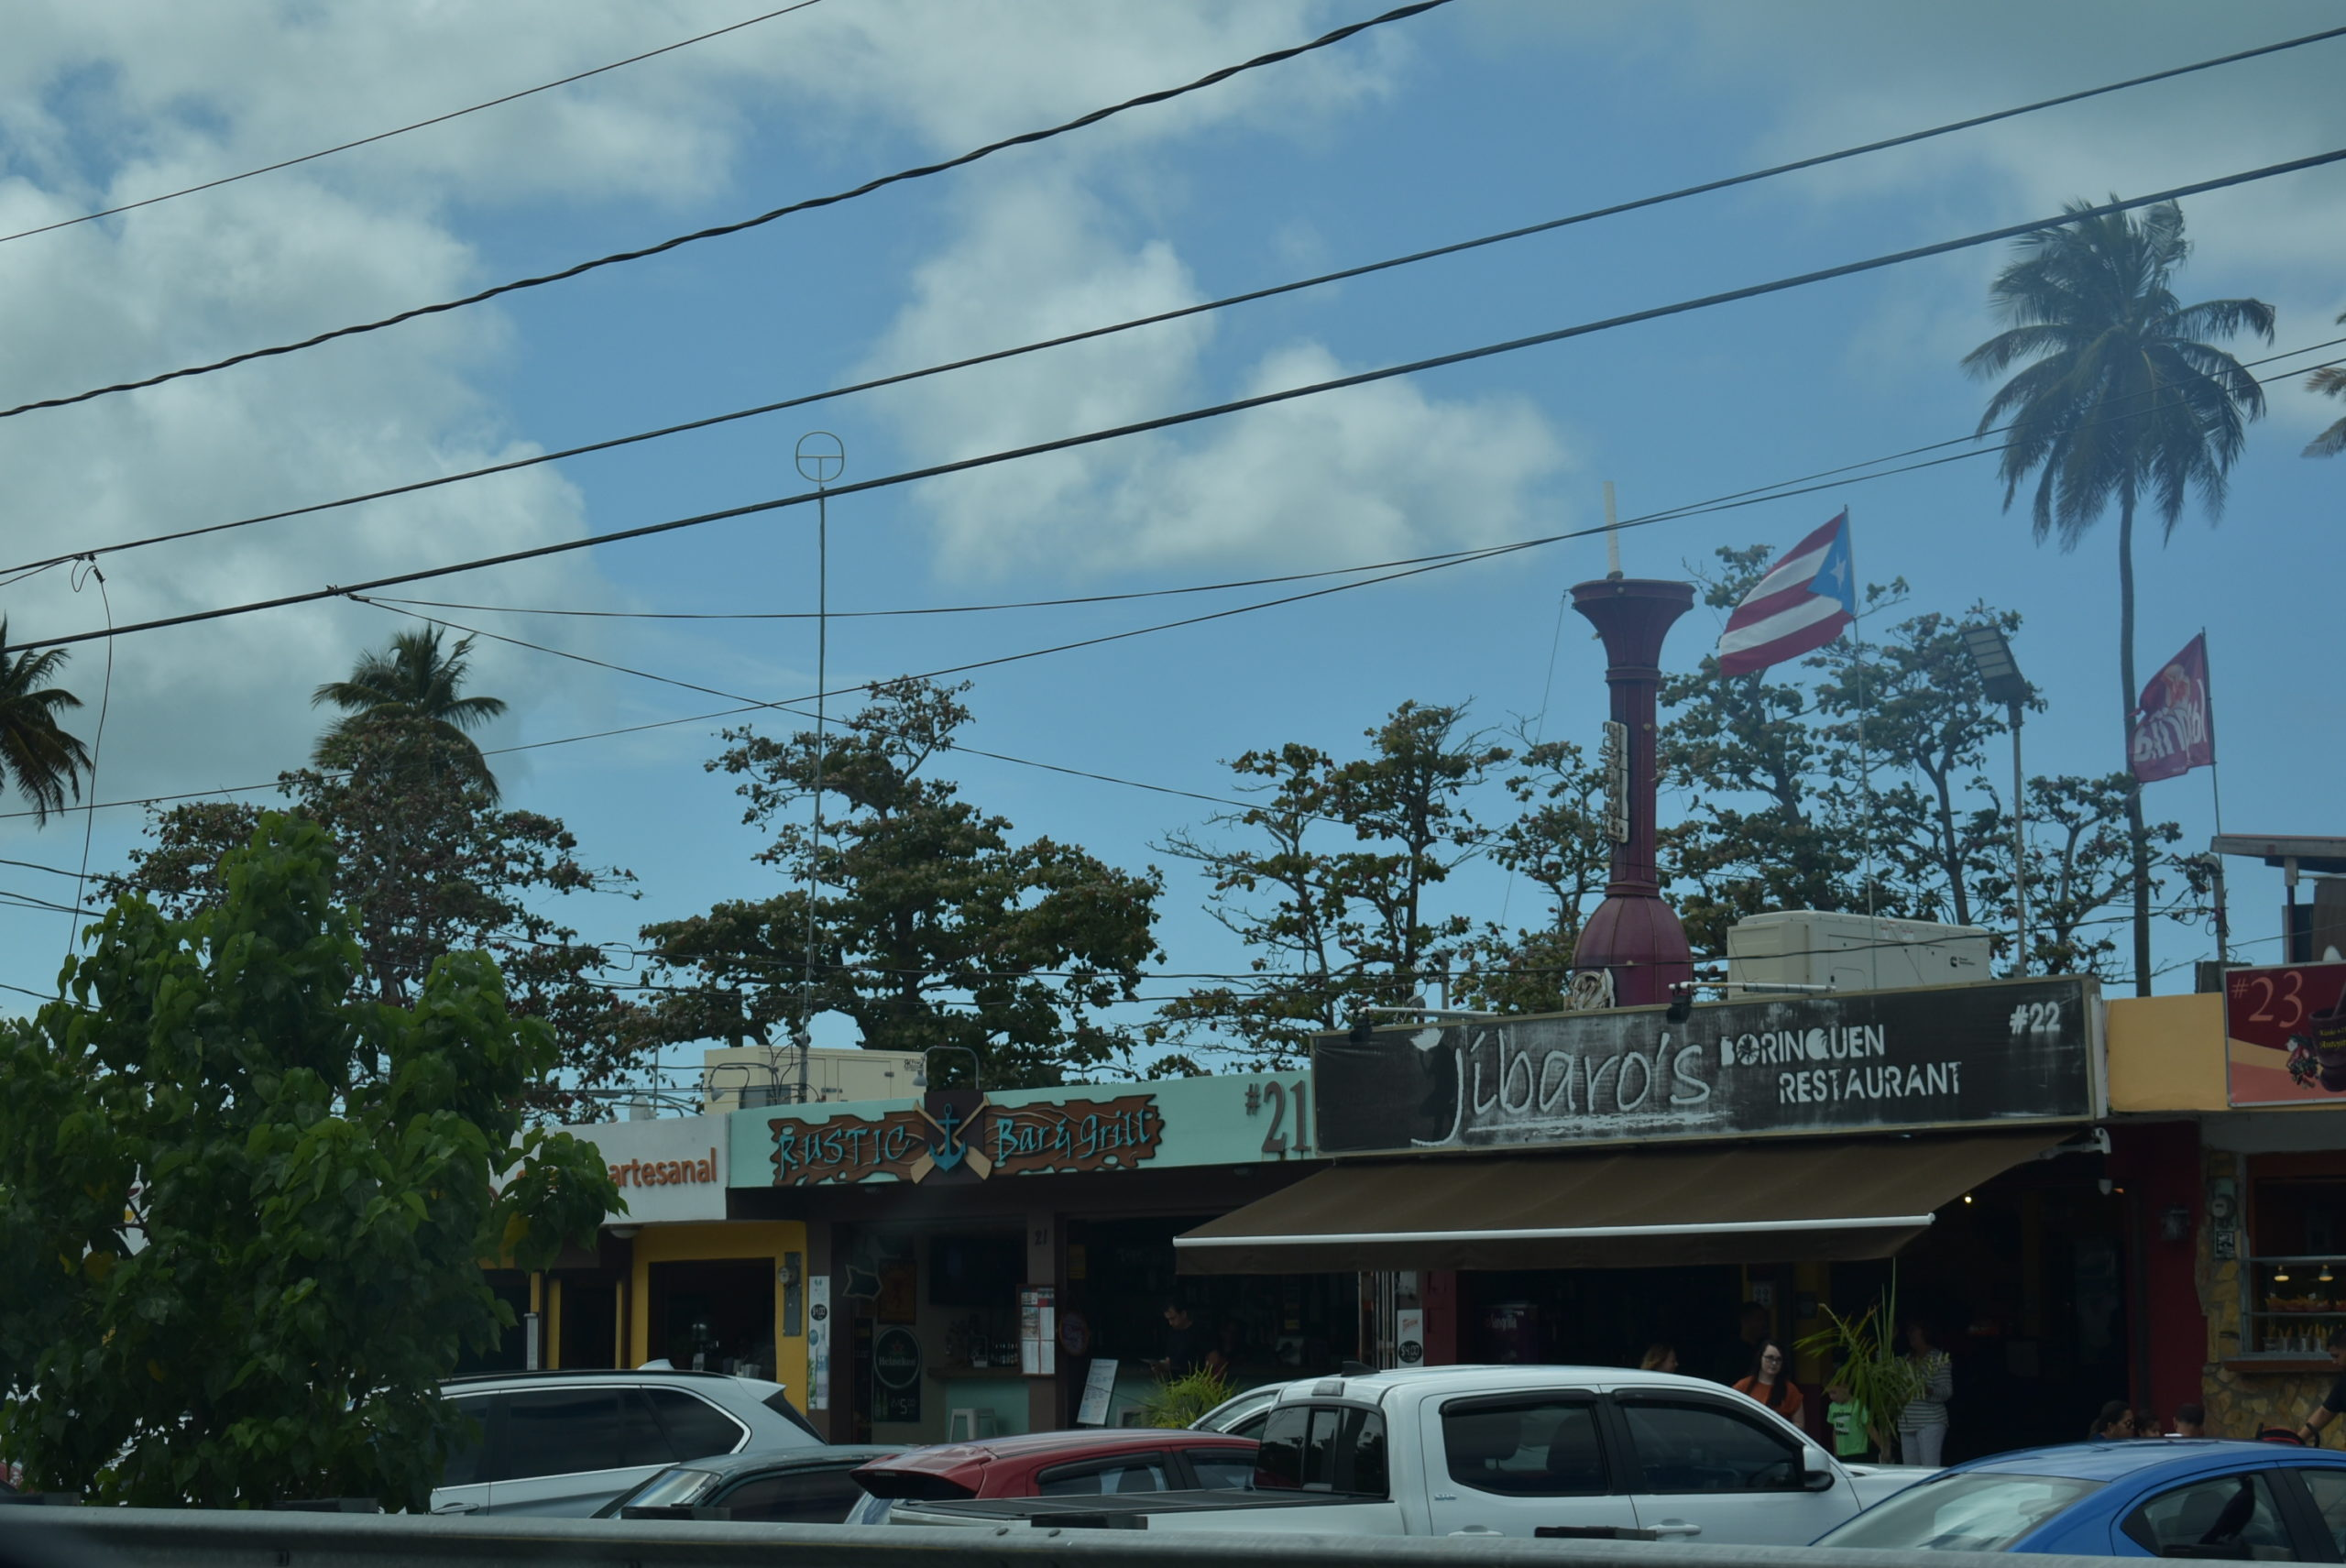 Luquillo Kiosks